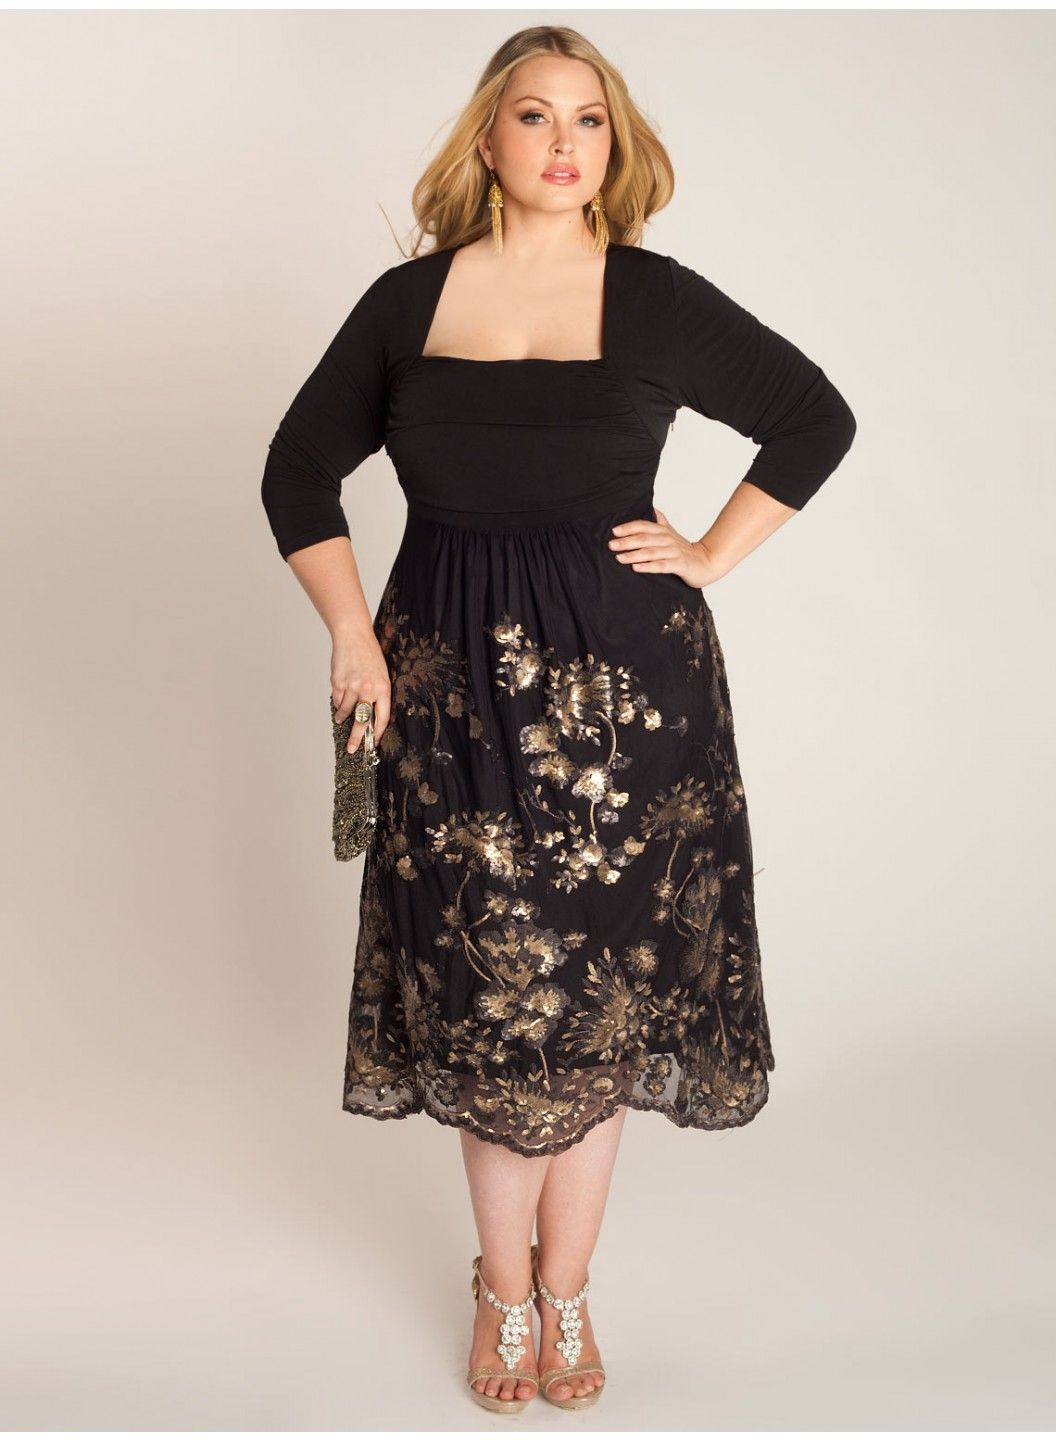 Finding Evening Dresses For A Large Size Woman D Lace Dress Plus Size Outfits Plus Size Formal Dresses